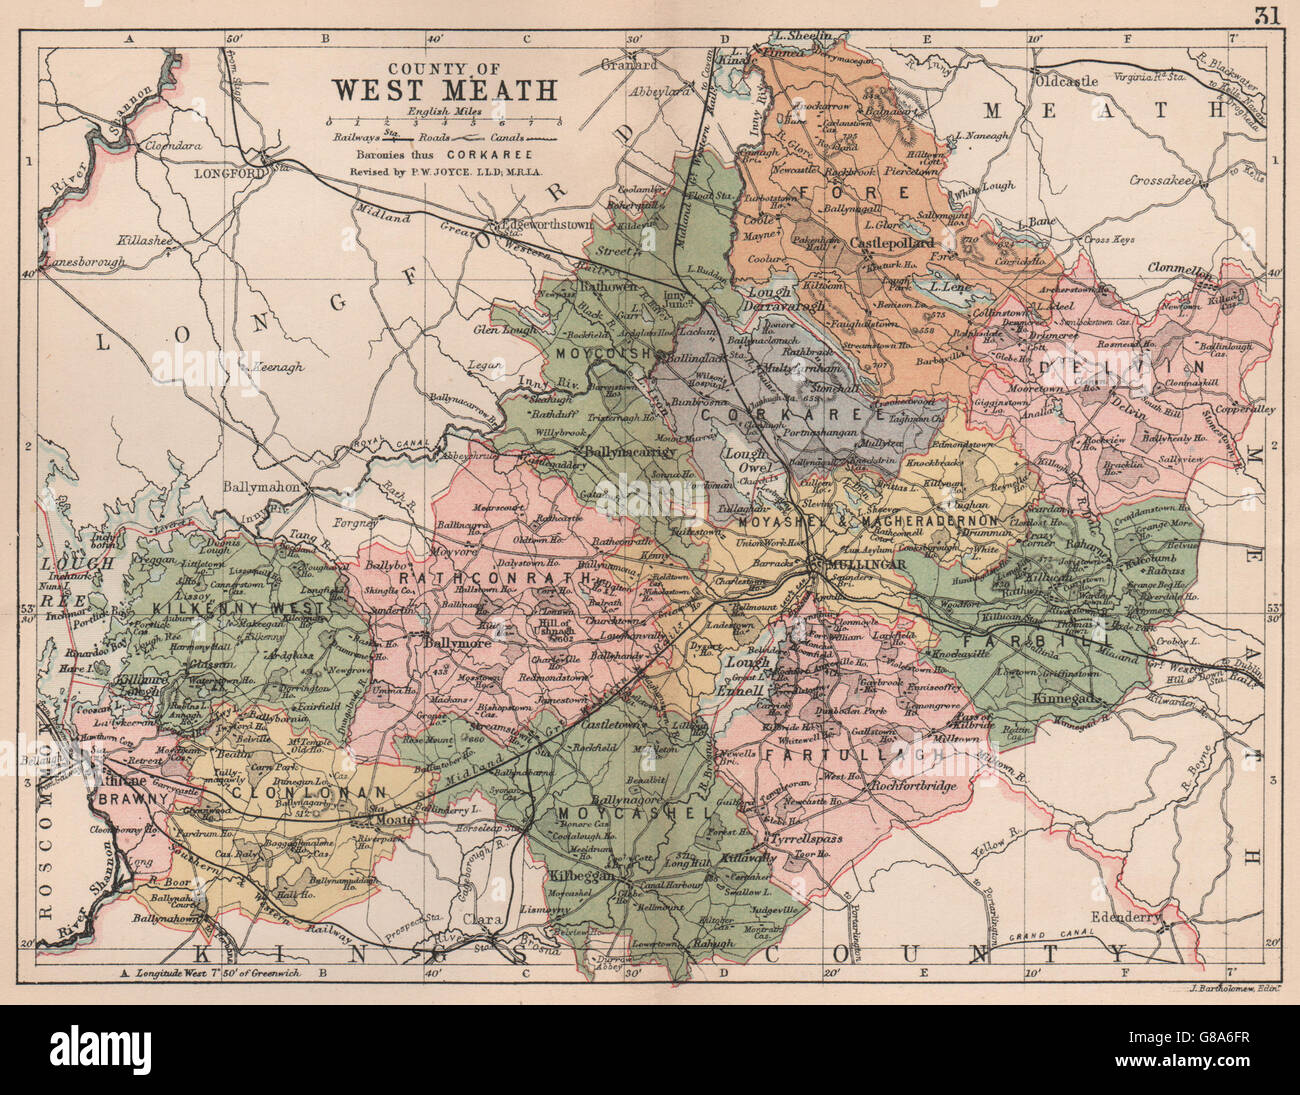 Westmeath Ireland Map.County Westmeath Antique County Map Leinster Ireland Bartholomew